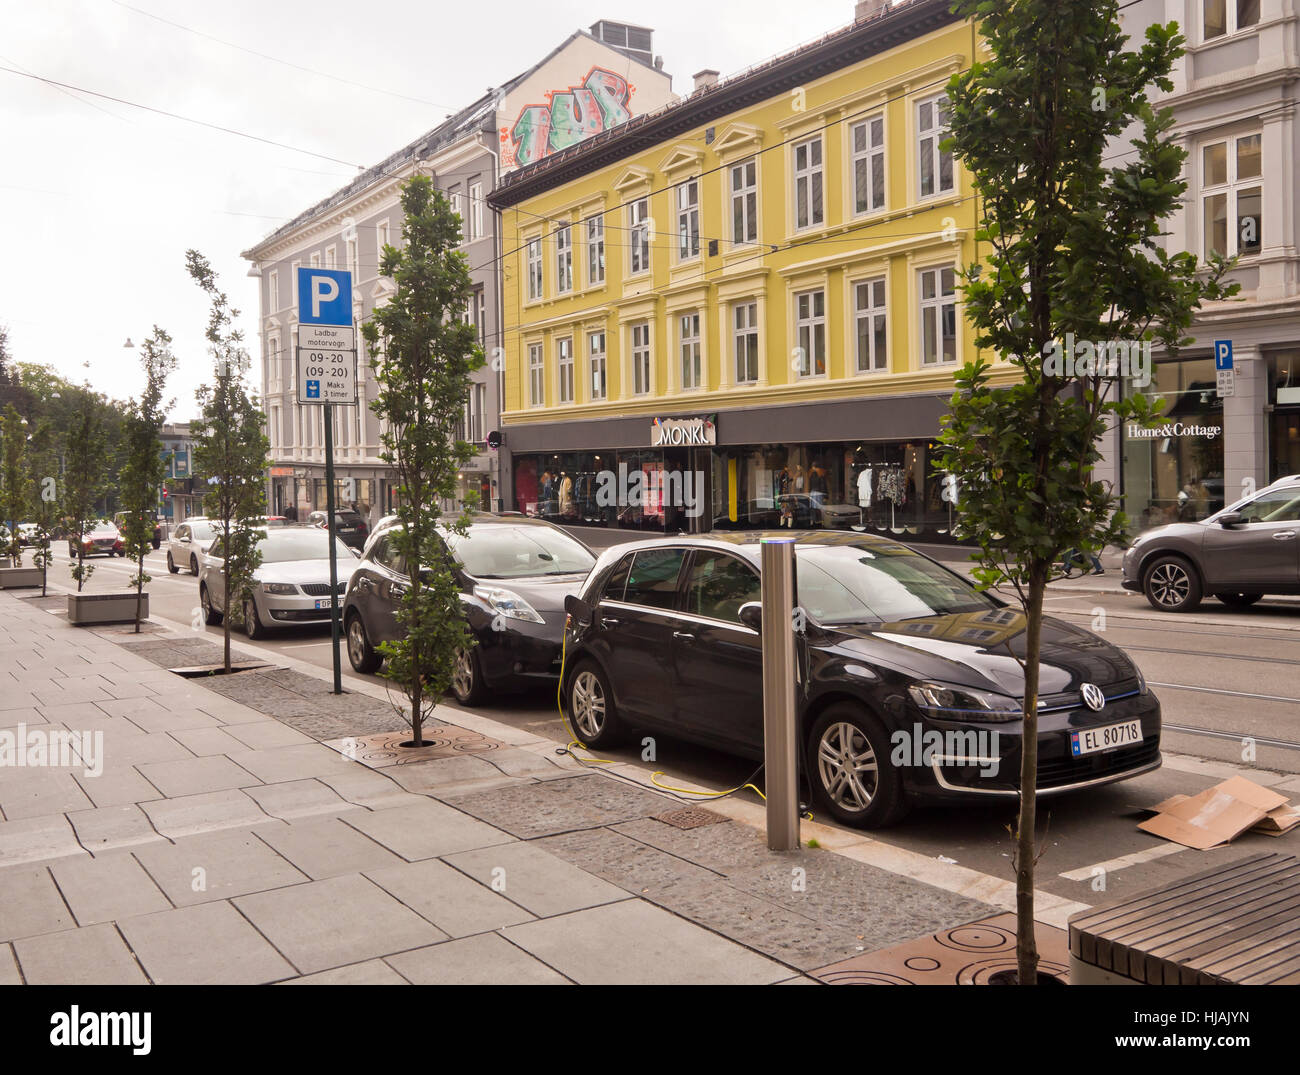 How To Charge Electric Car With On Street Parking